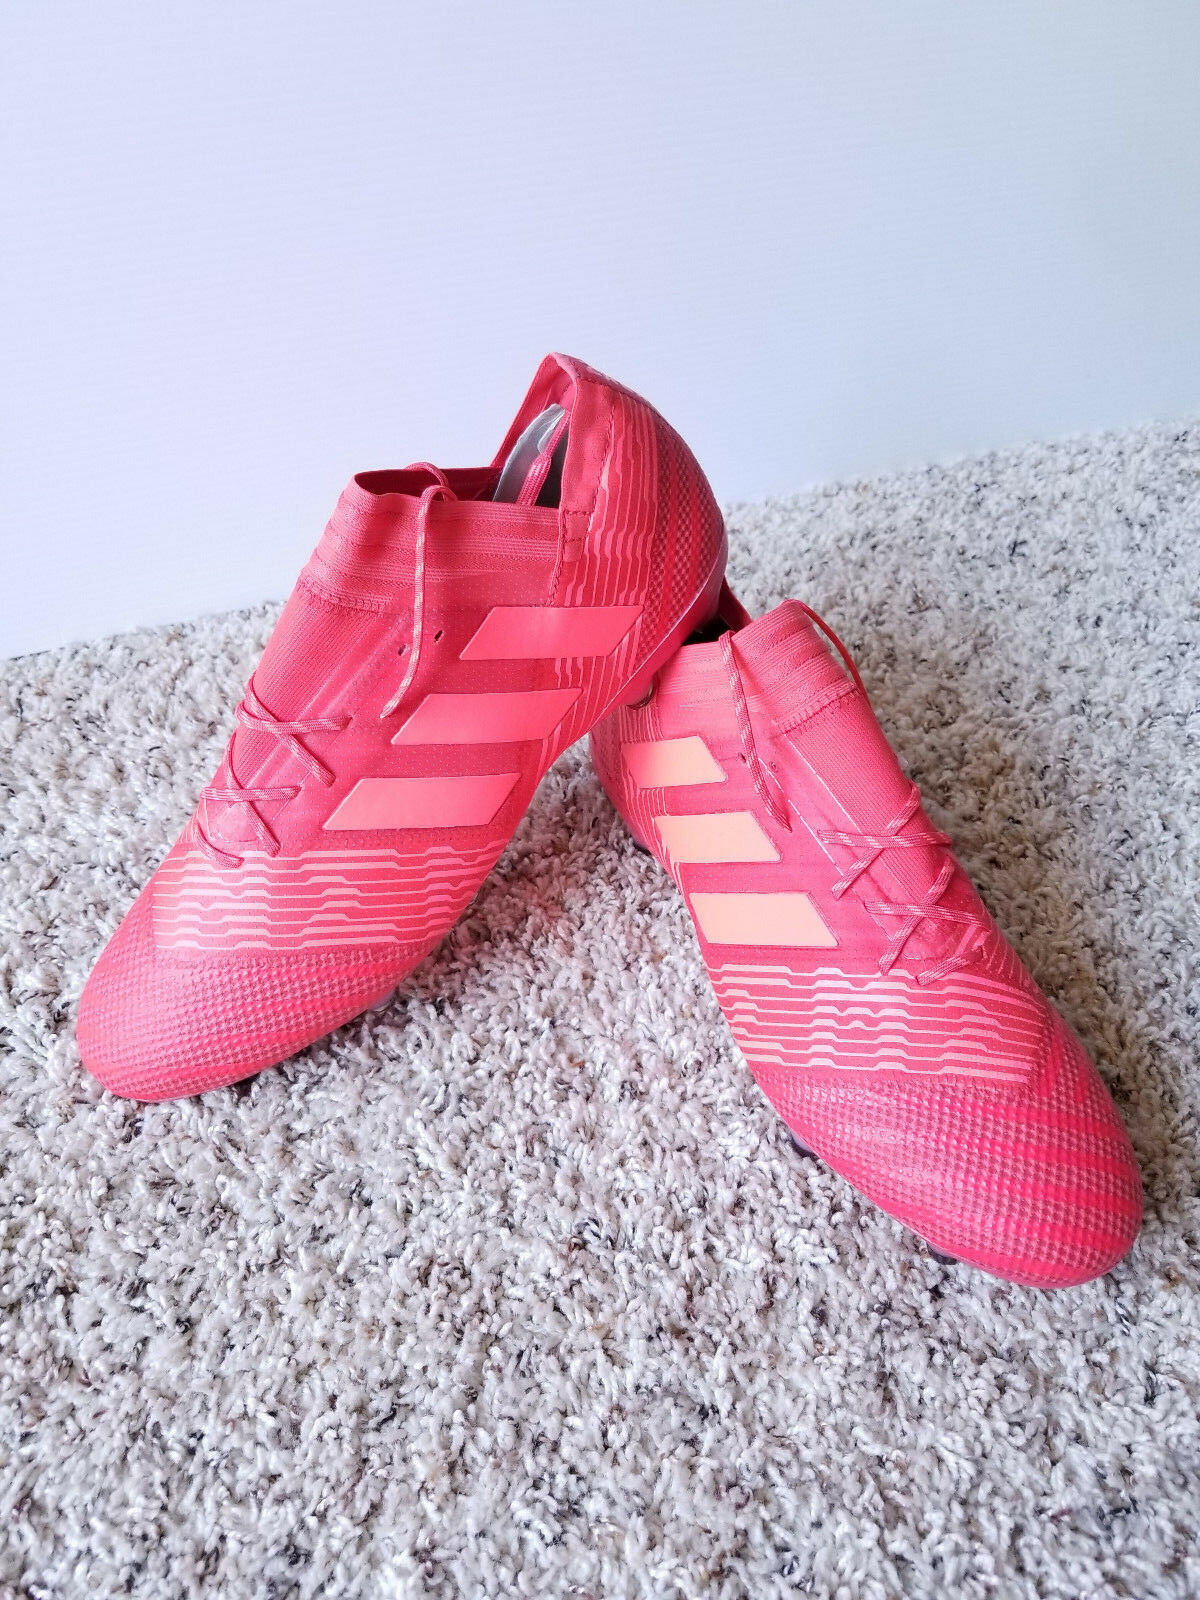 Adidas Men's Soccer Nemeziz 17.1 FG Cleats shoes Real Coral Red US 13.5 NWOB